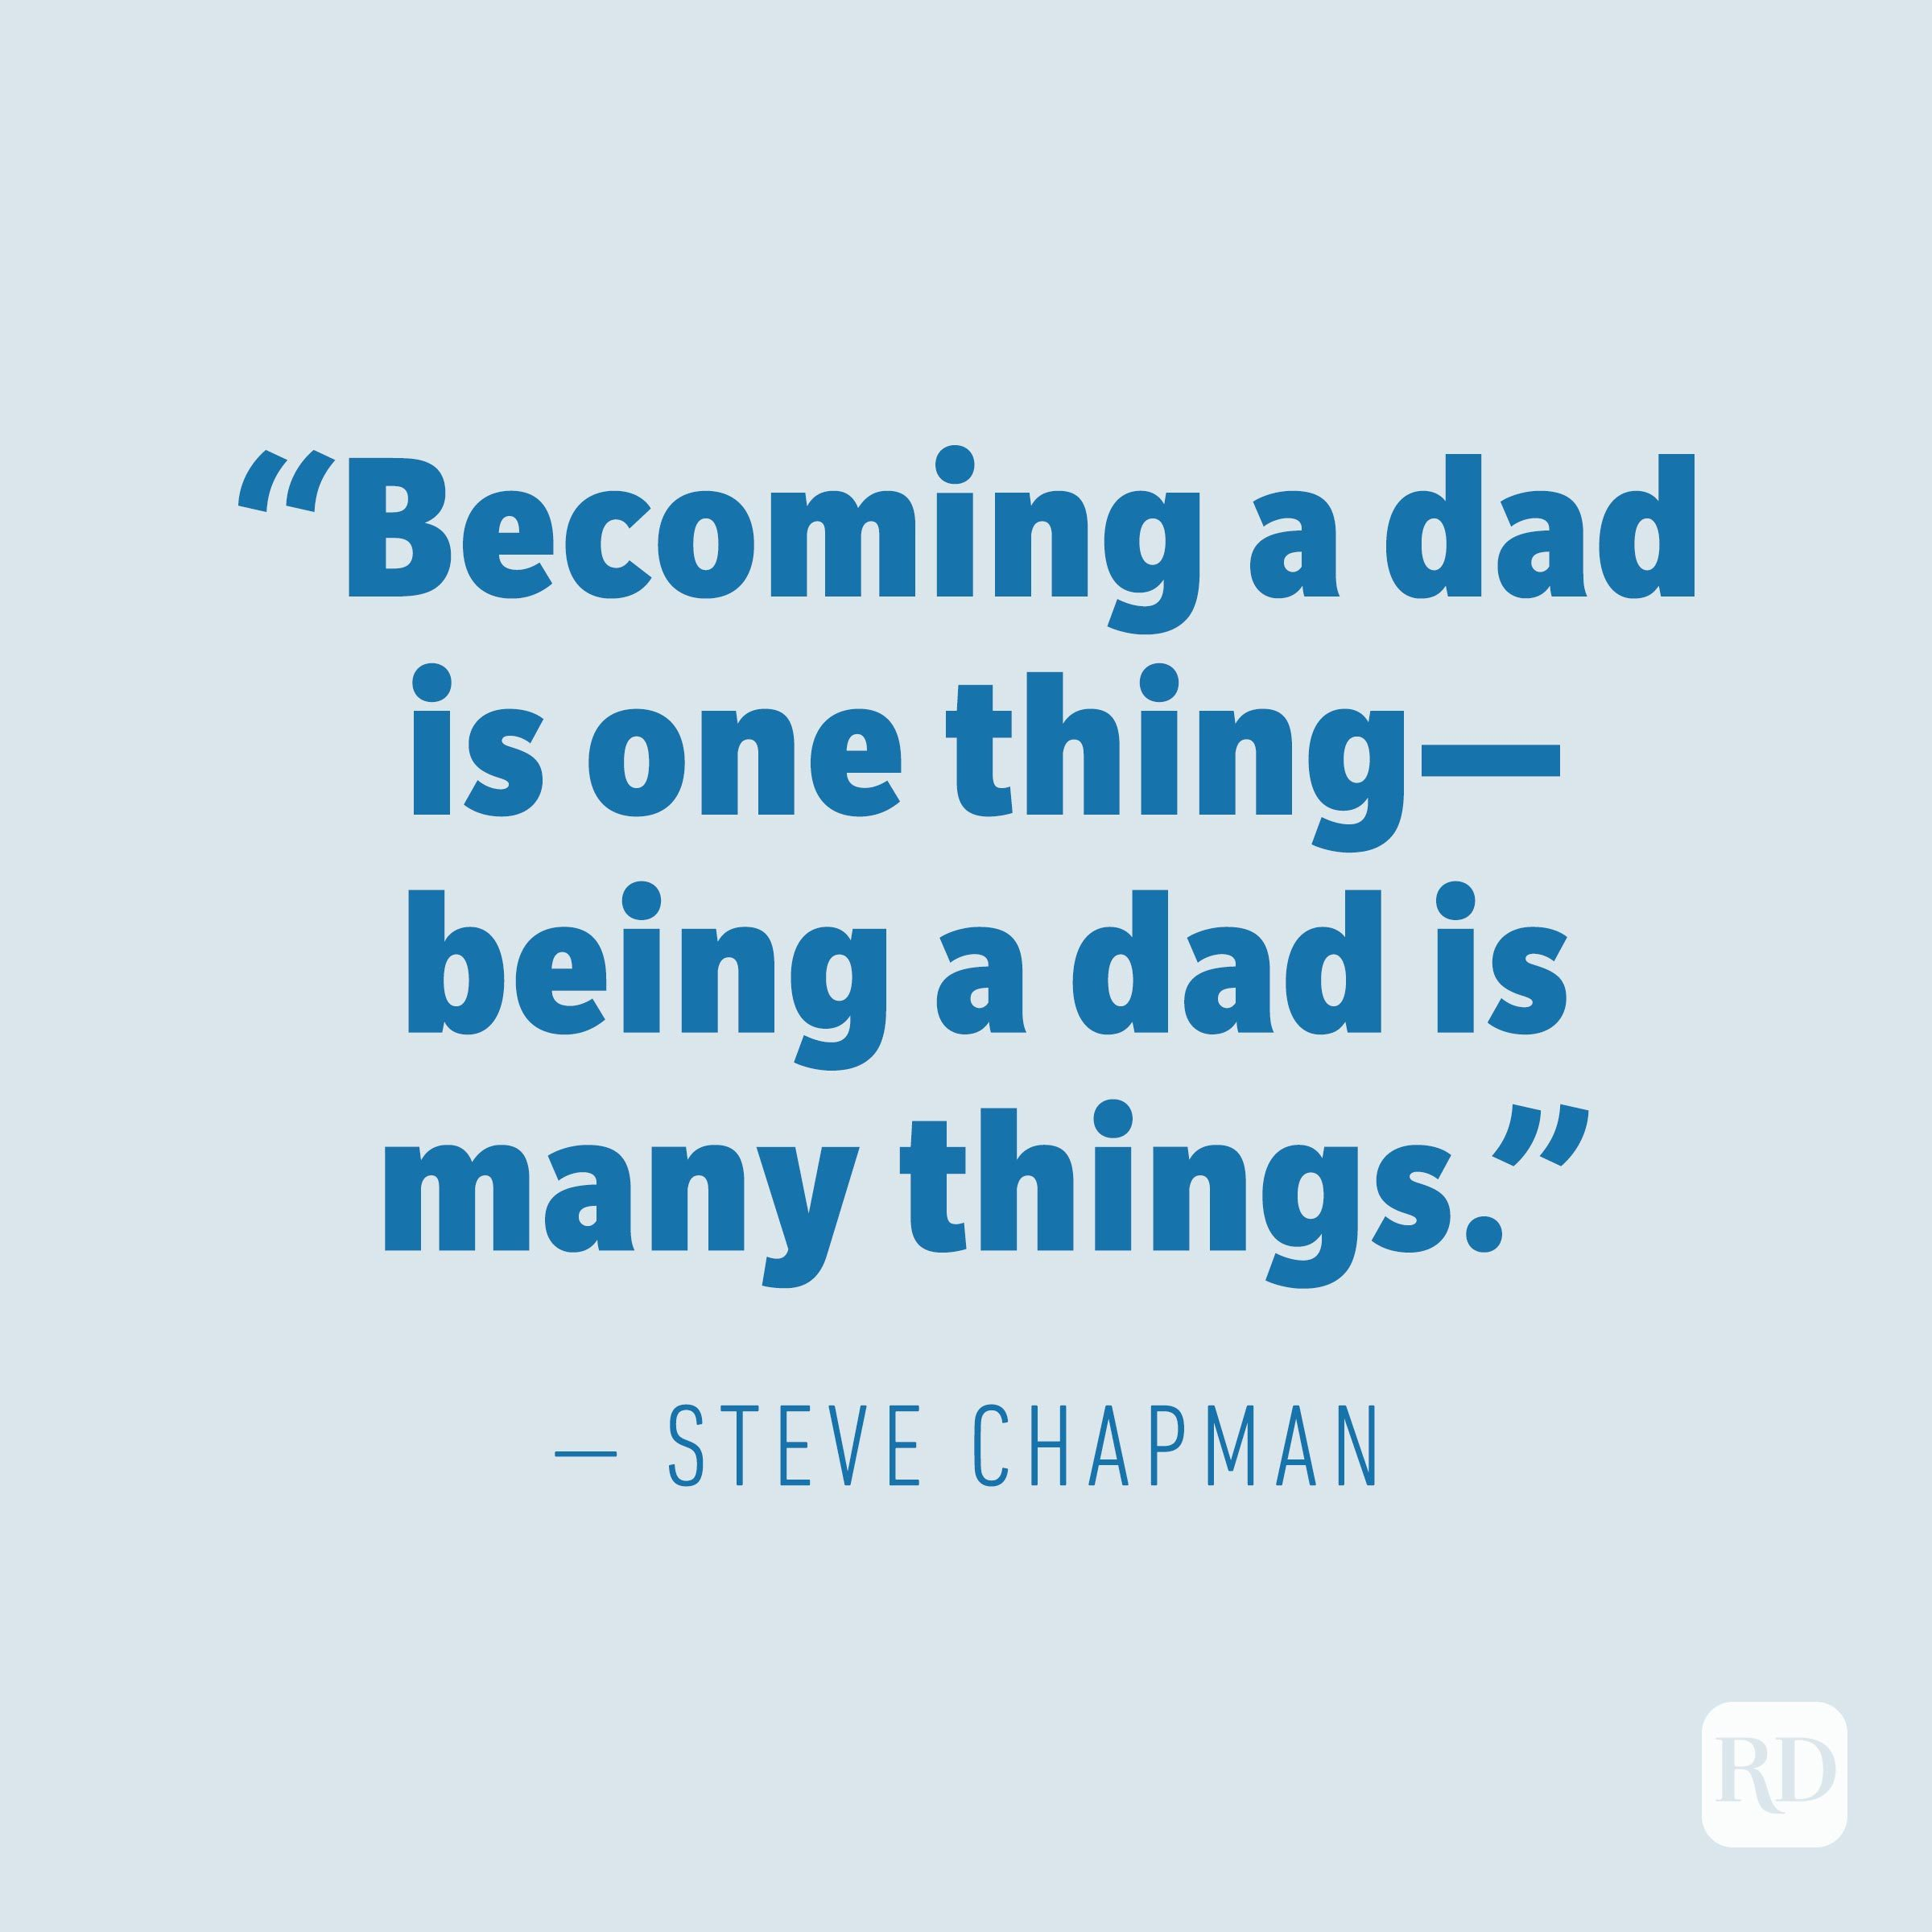 """Becoming a dad is one thing—being a dad is many things."" —STEVE CHAPMAN"